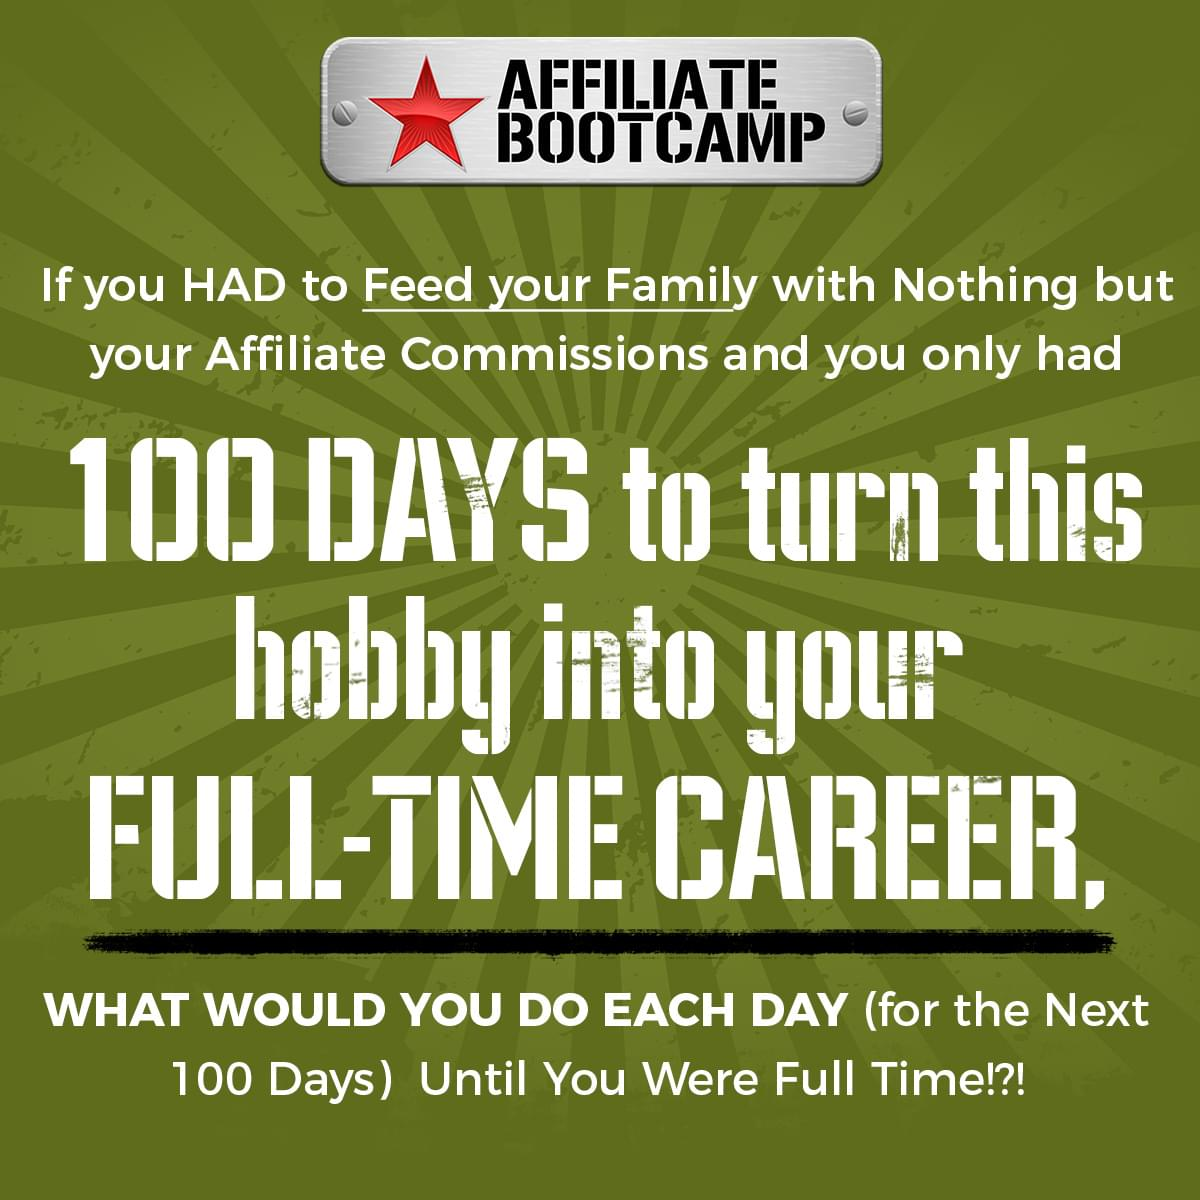 Join The Affiliate Bootcamp